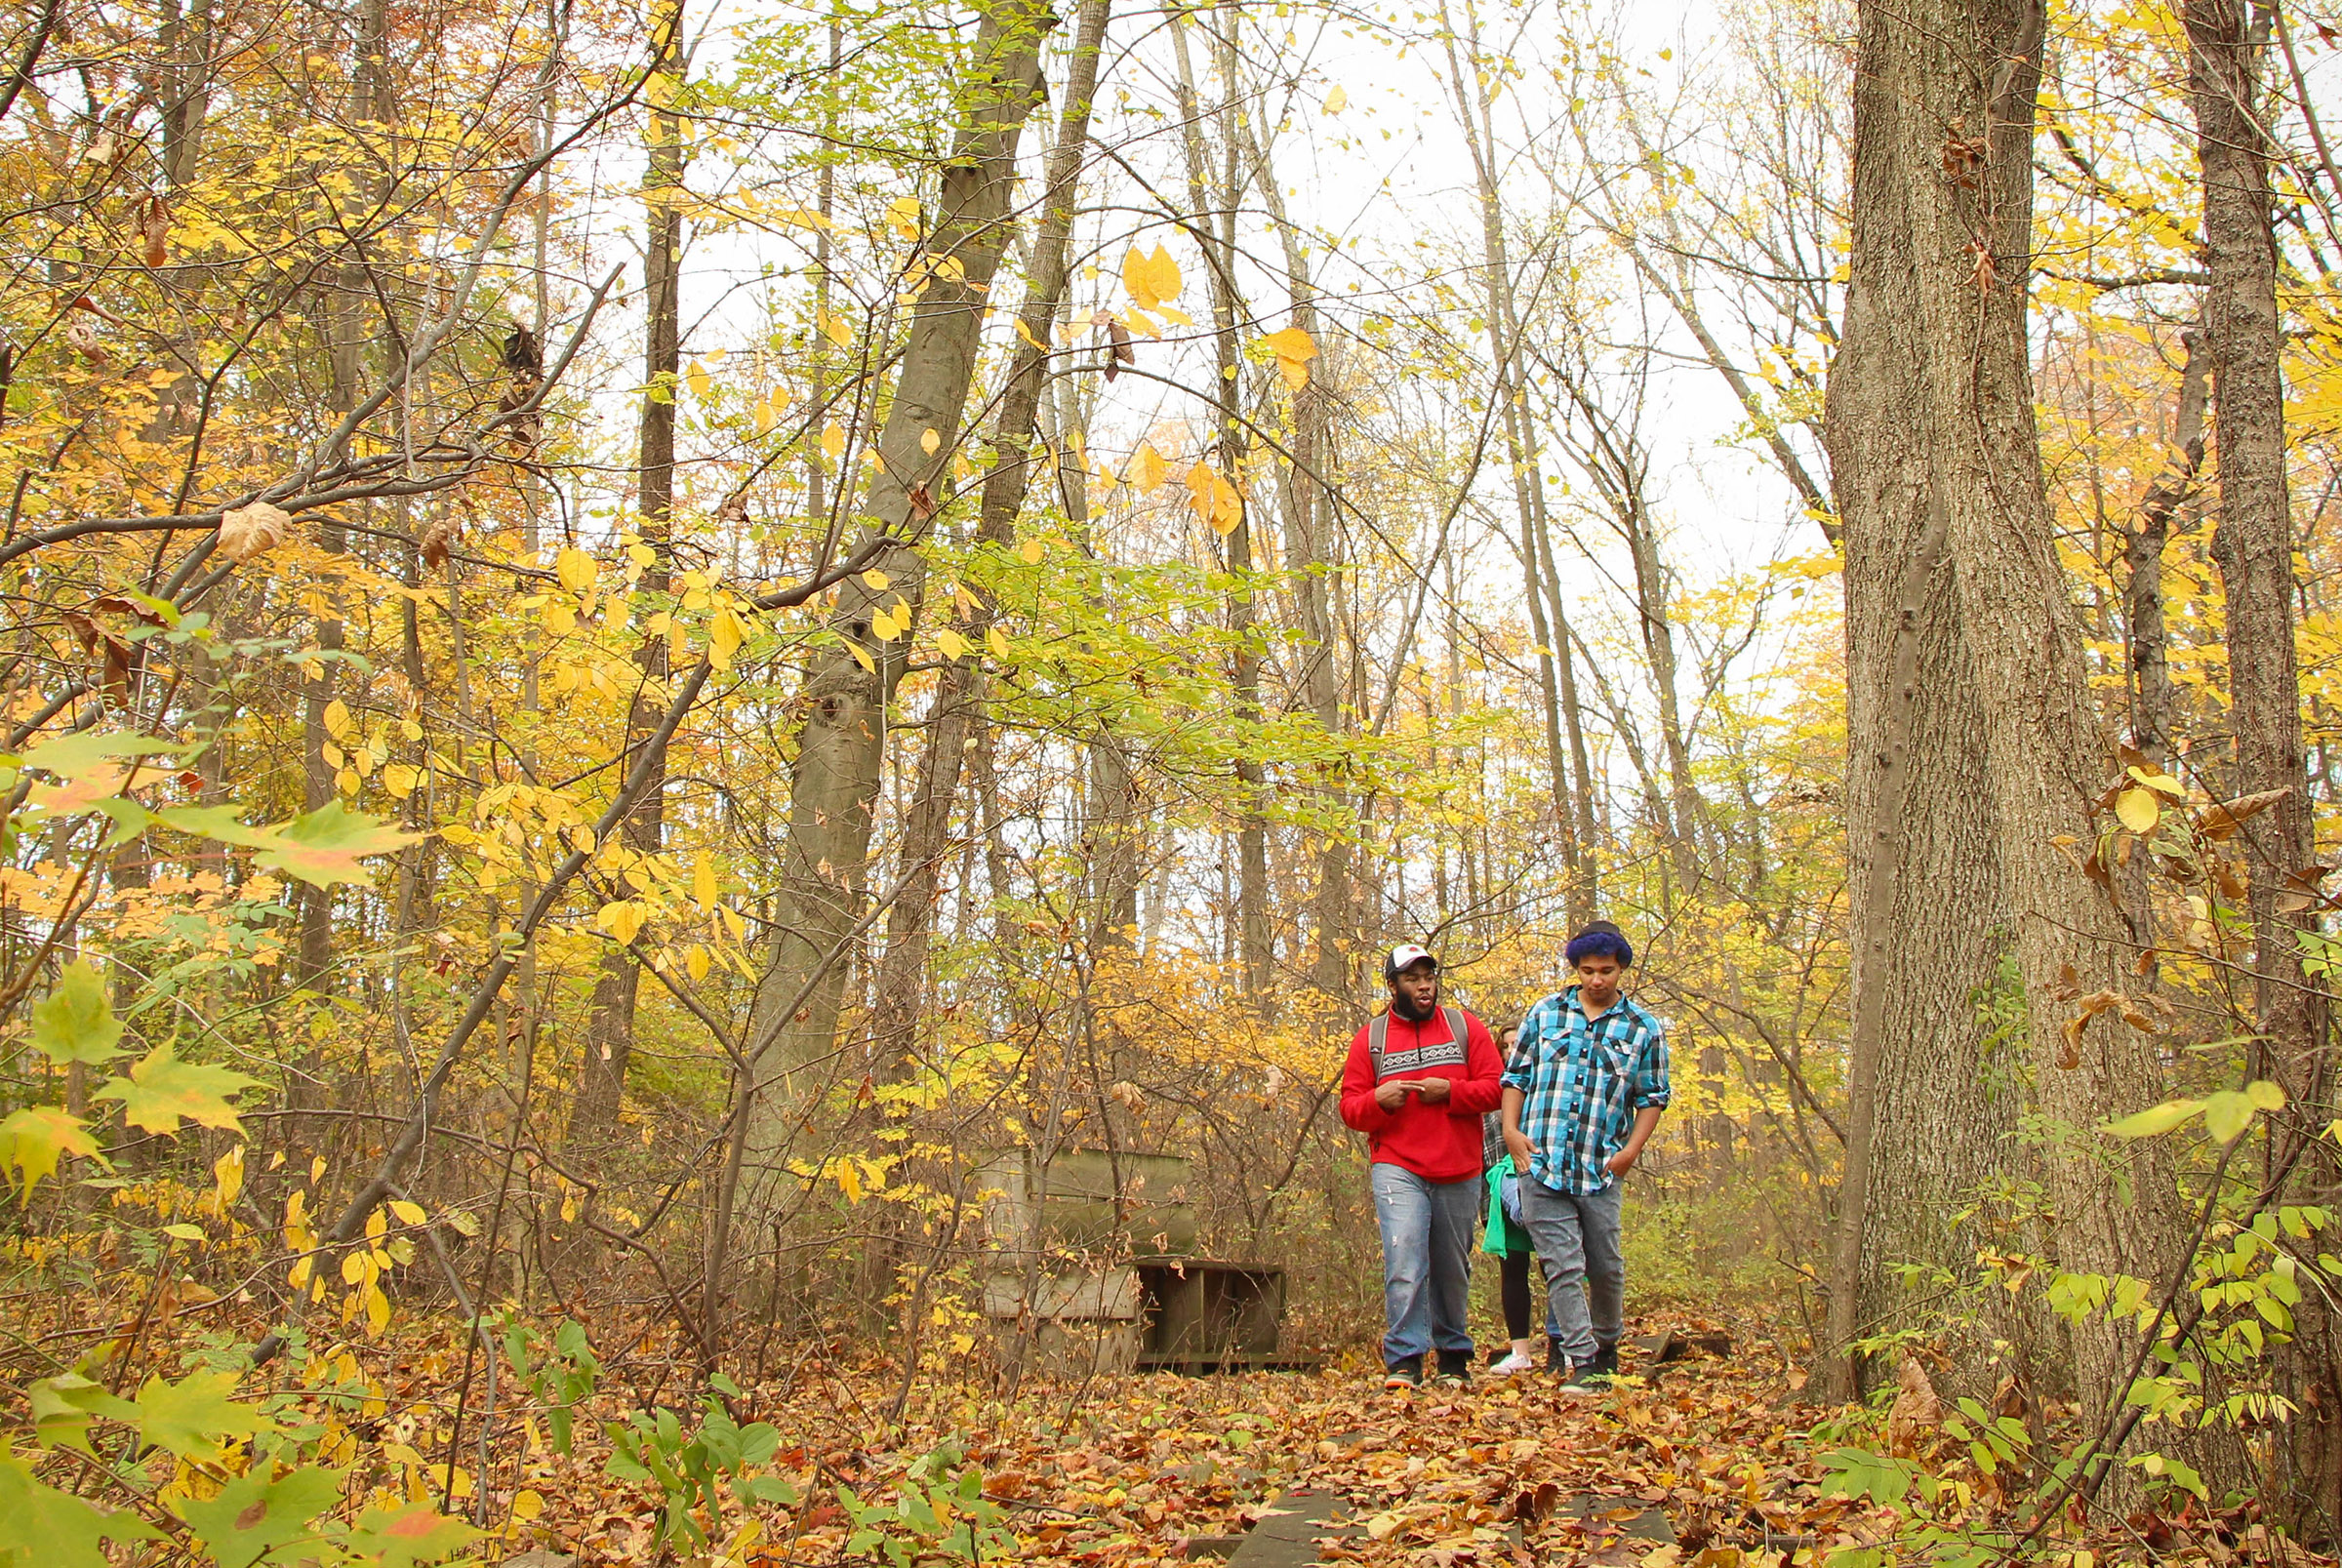 Students hiking the trail in autumn.